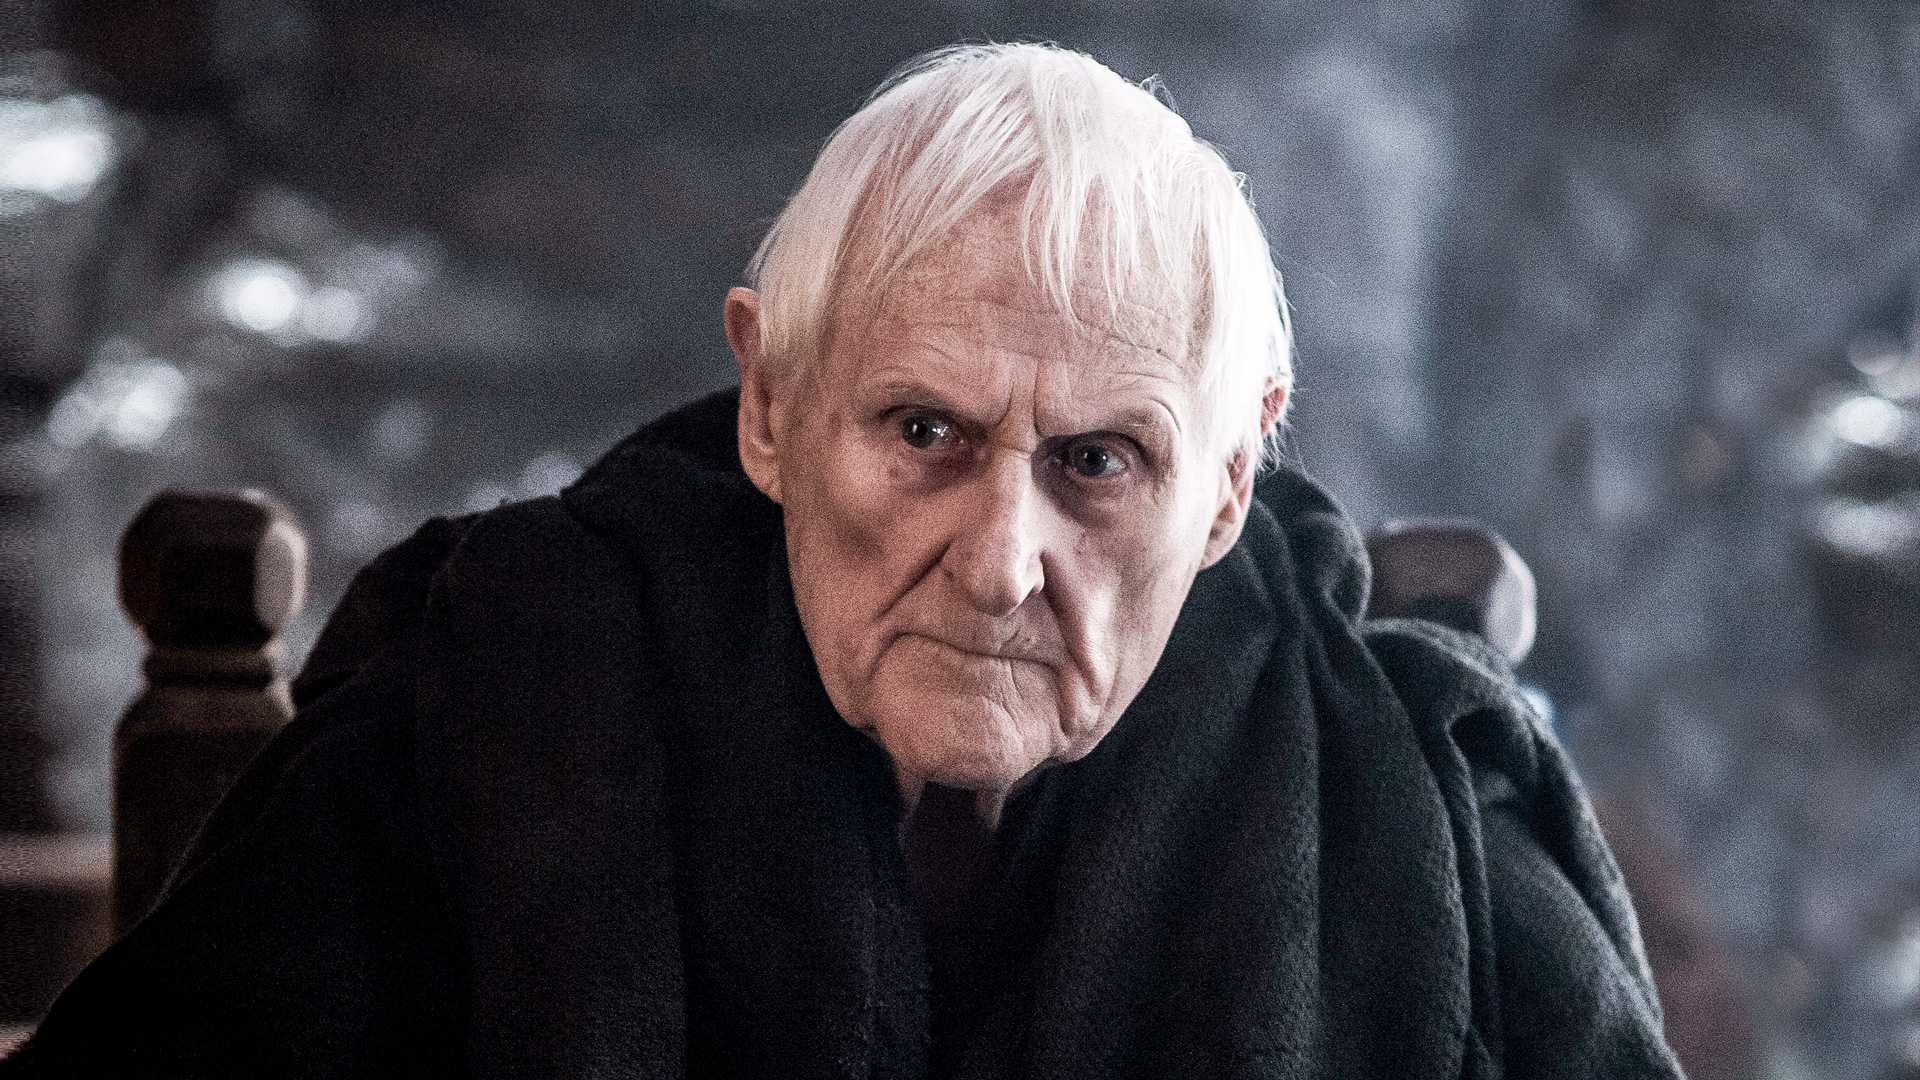 Maester Aemon, played by Peter Vaughan